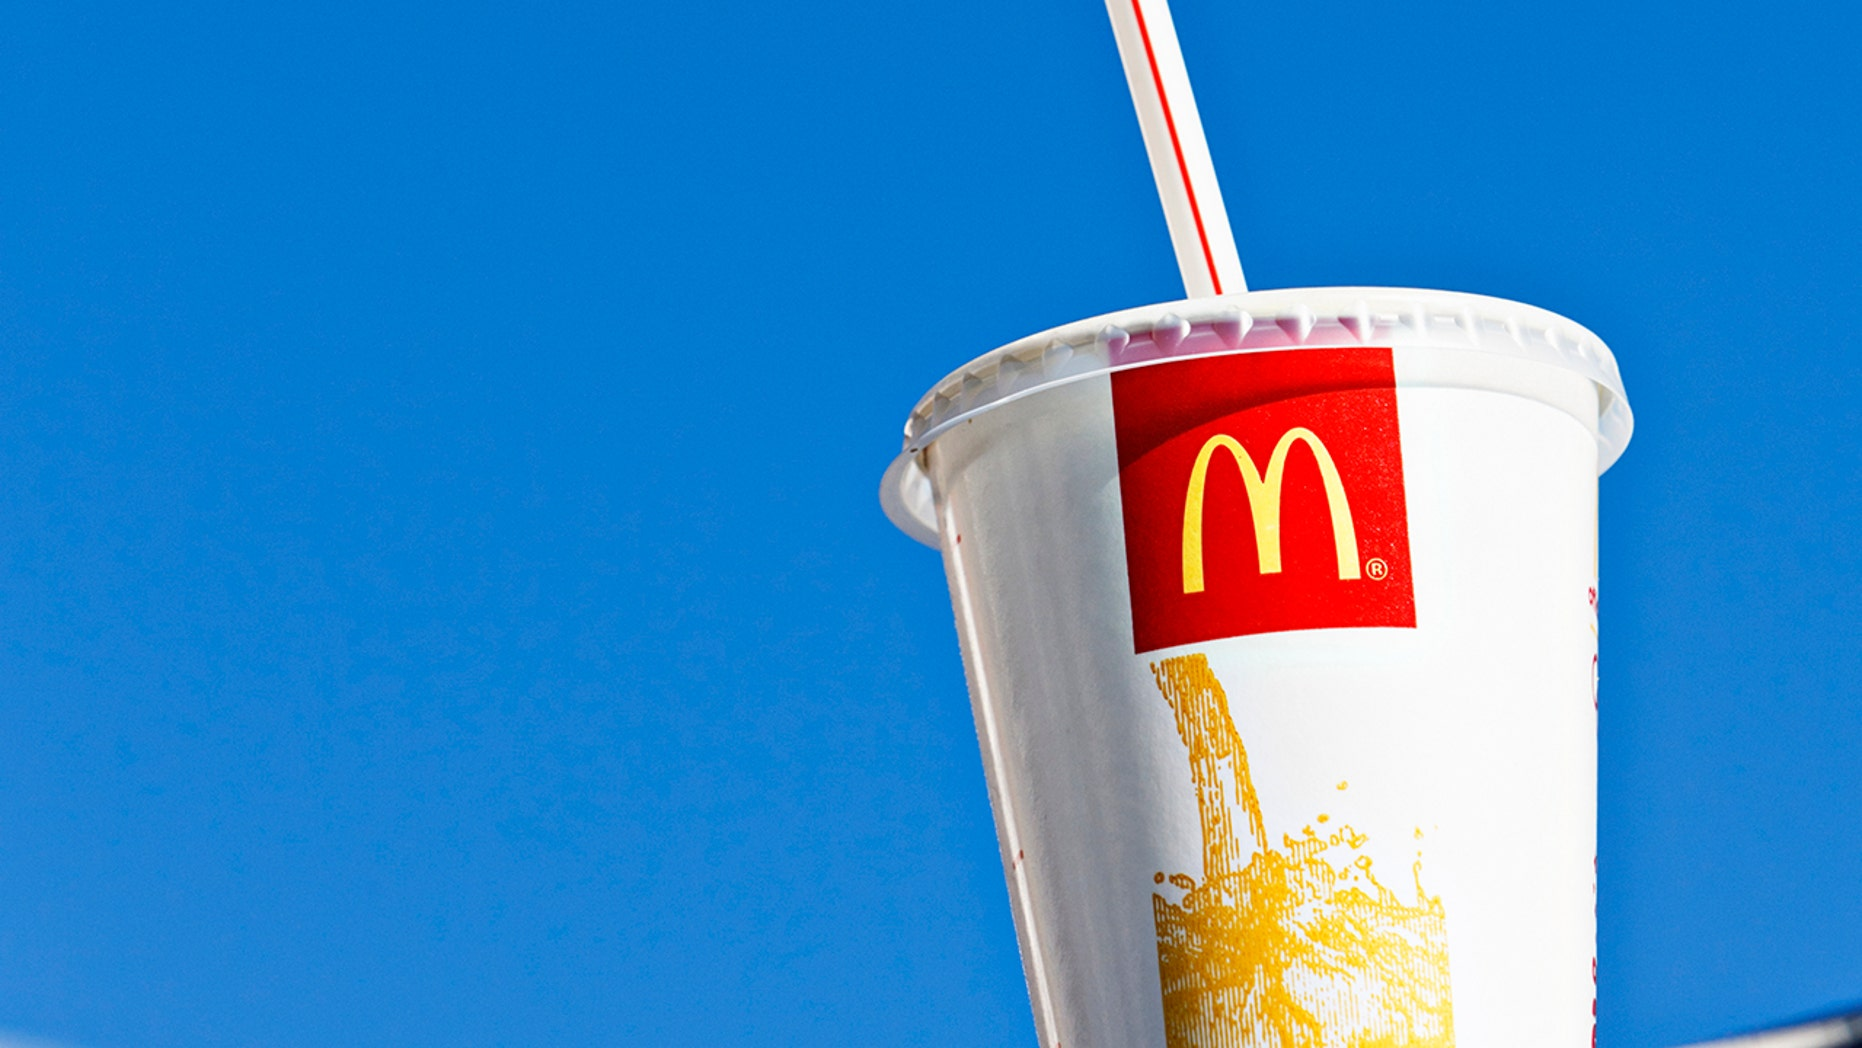 The BBC's study found fecal bacteria at three out of ten McDonald's restaurants.